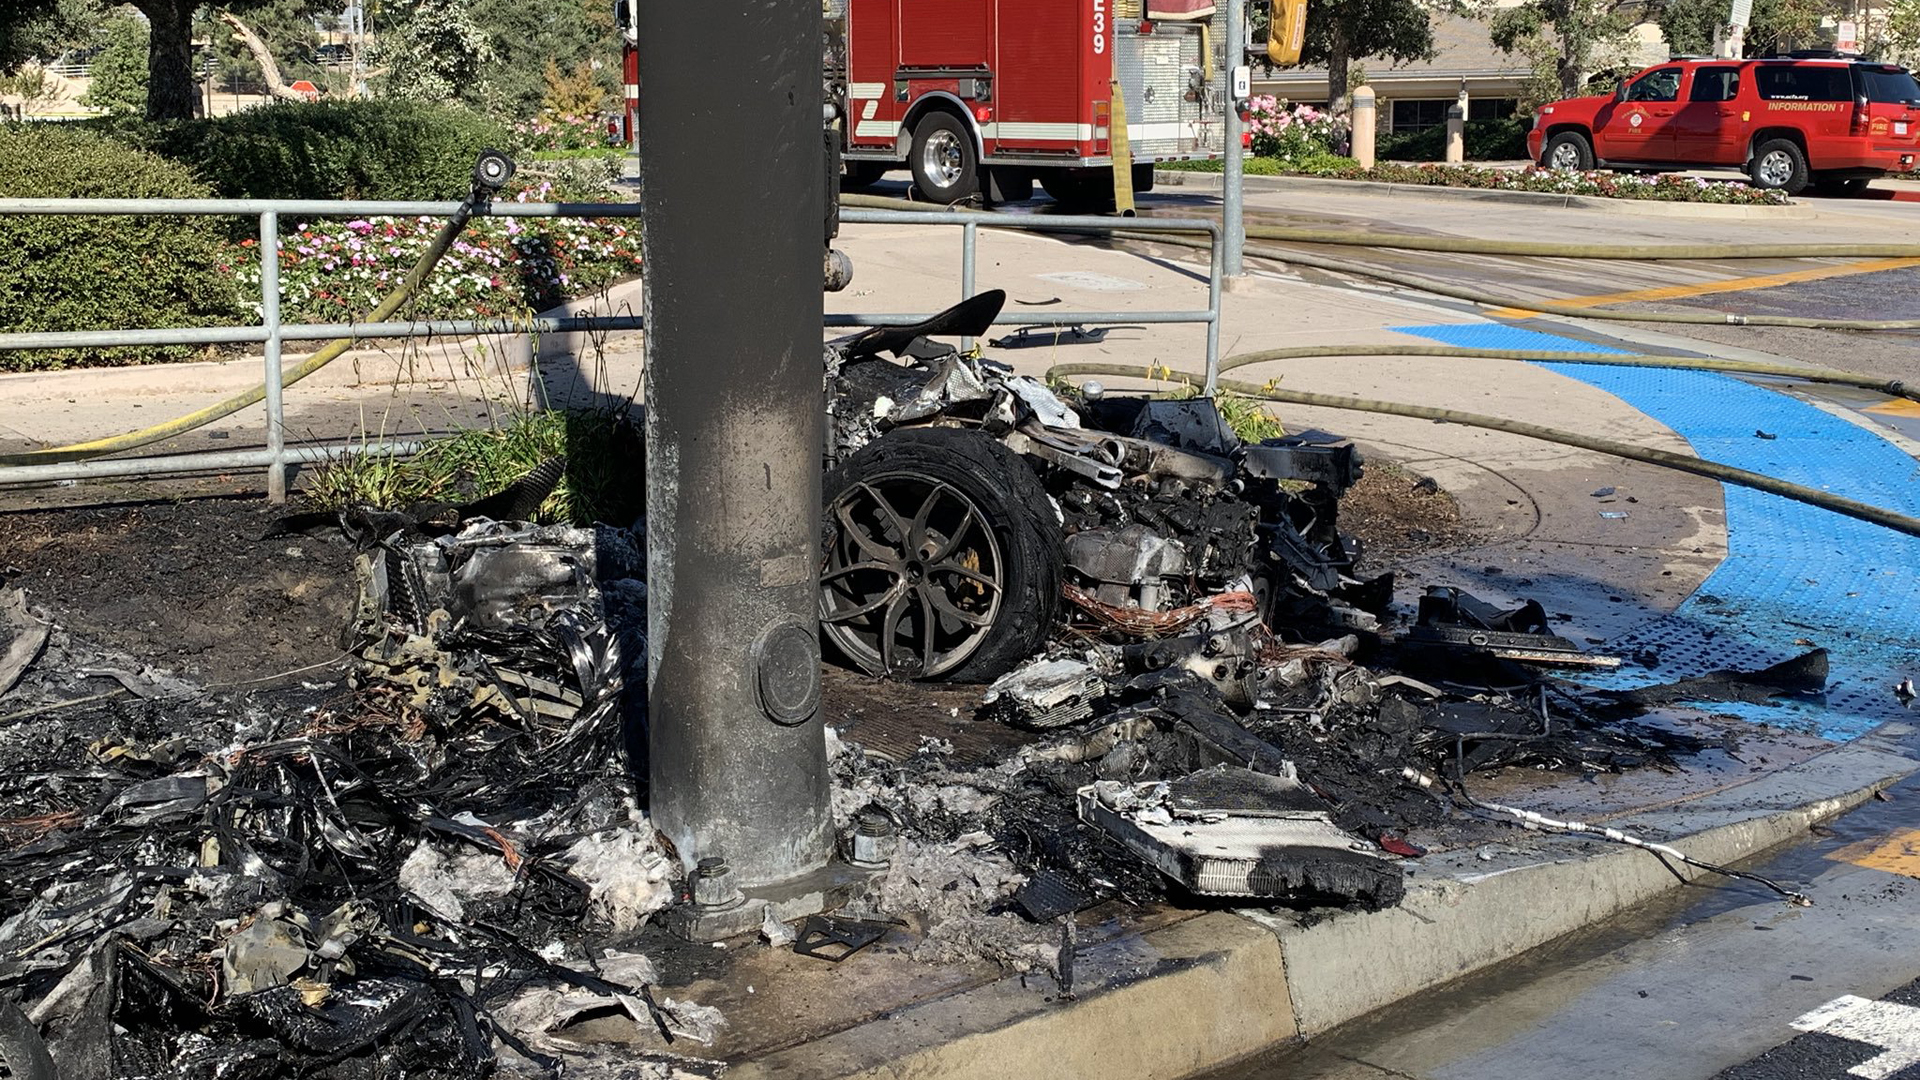 The Orange County Fire Authority released this photo showing the remains of a car that crashed into a pole and erupted in flames on Oct. 23, 2019.